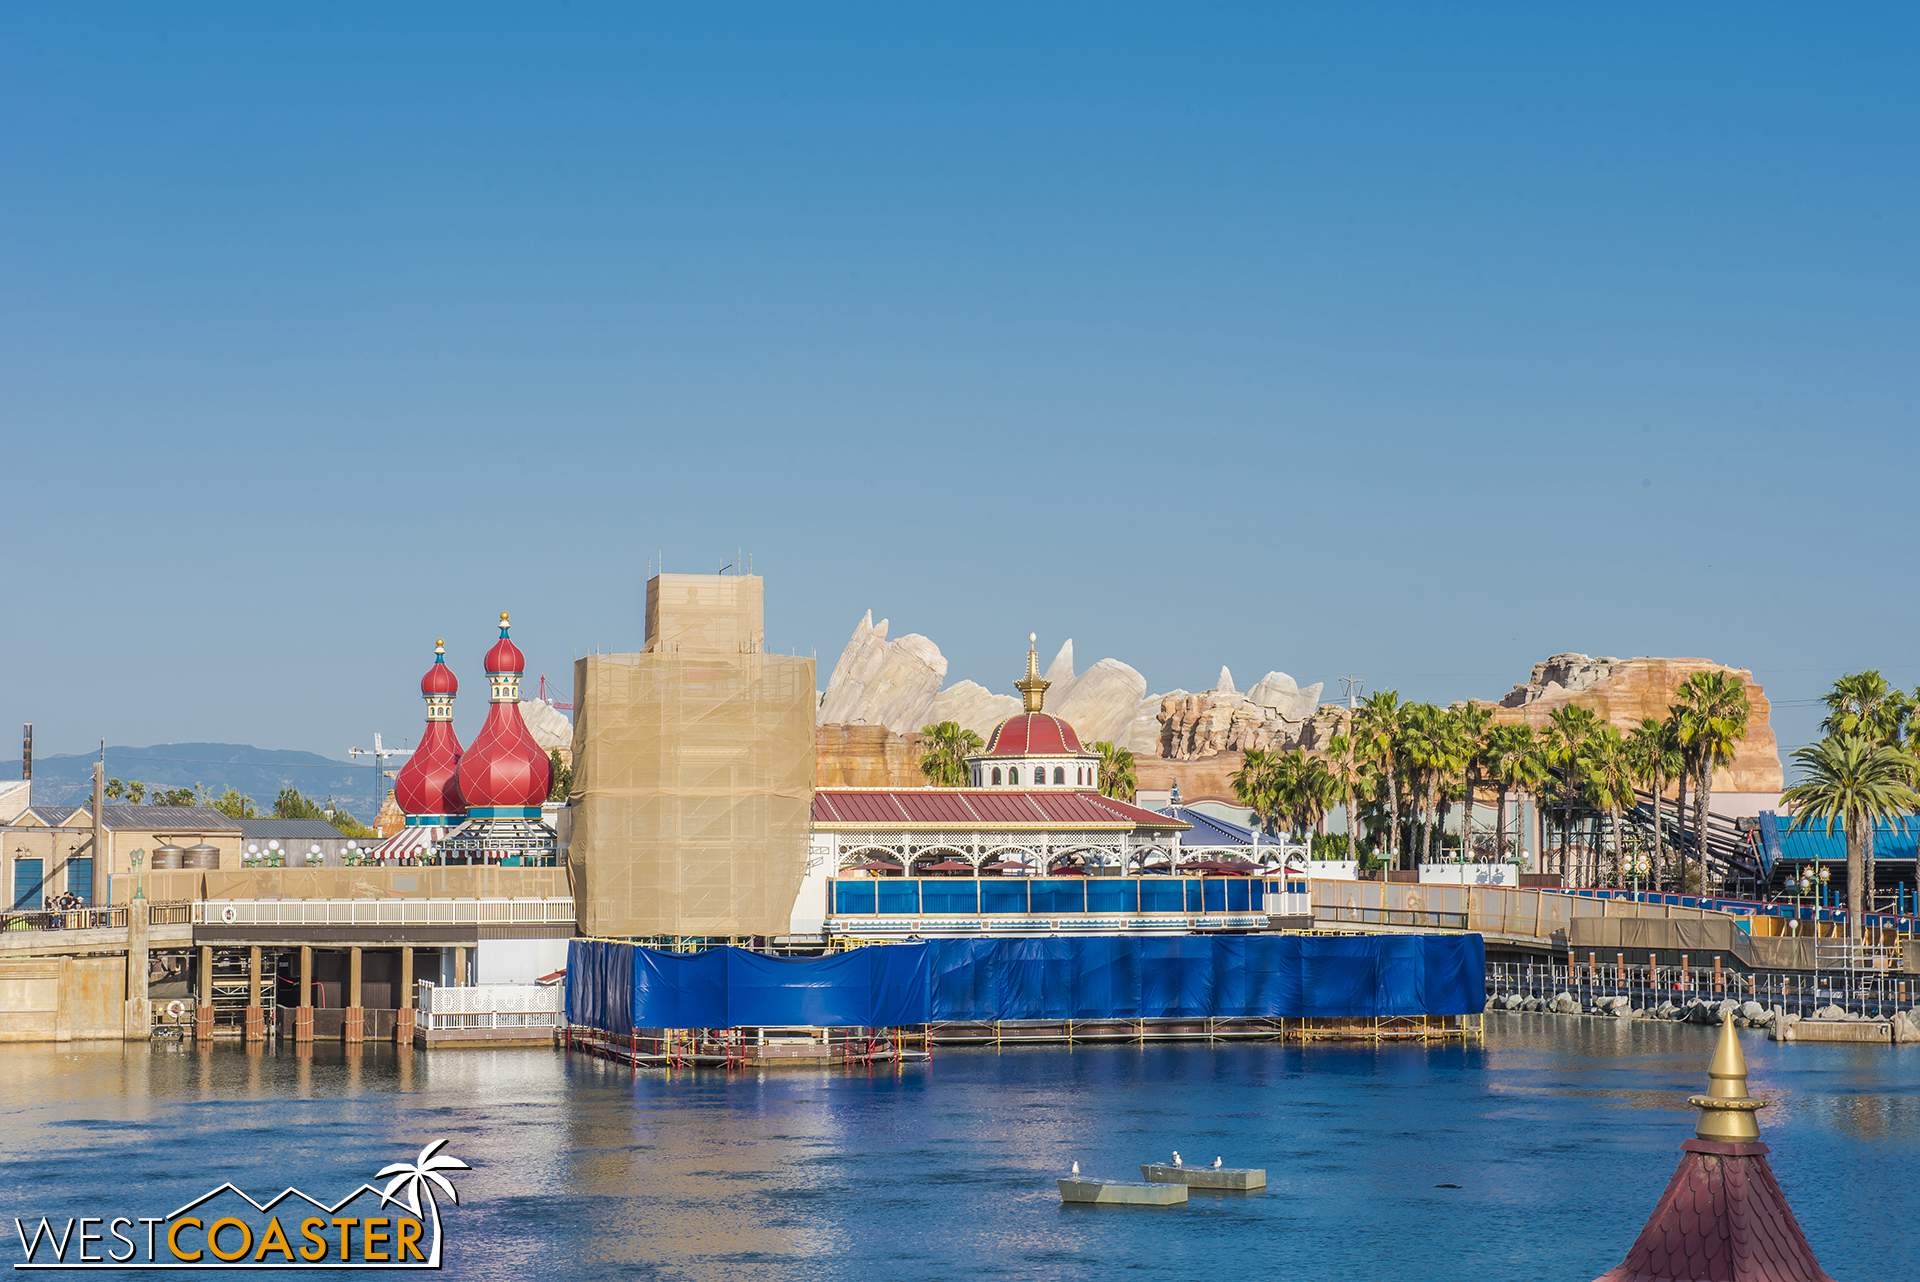 I keep on telling myself I'll take less pictures of Pixar Pier, especially if there's little noticeable progress, but I keep finding new angles and vantage points for photos!